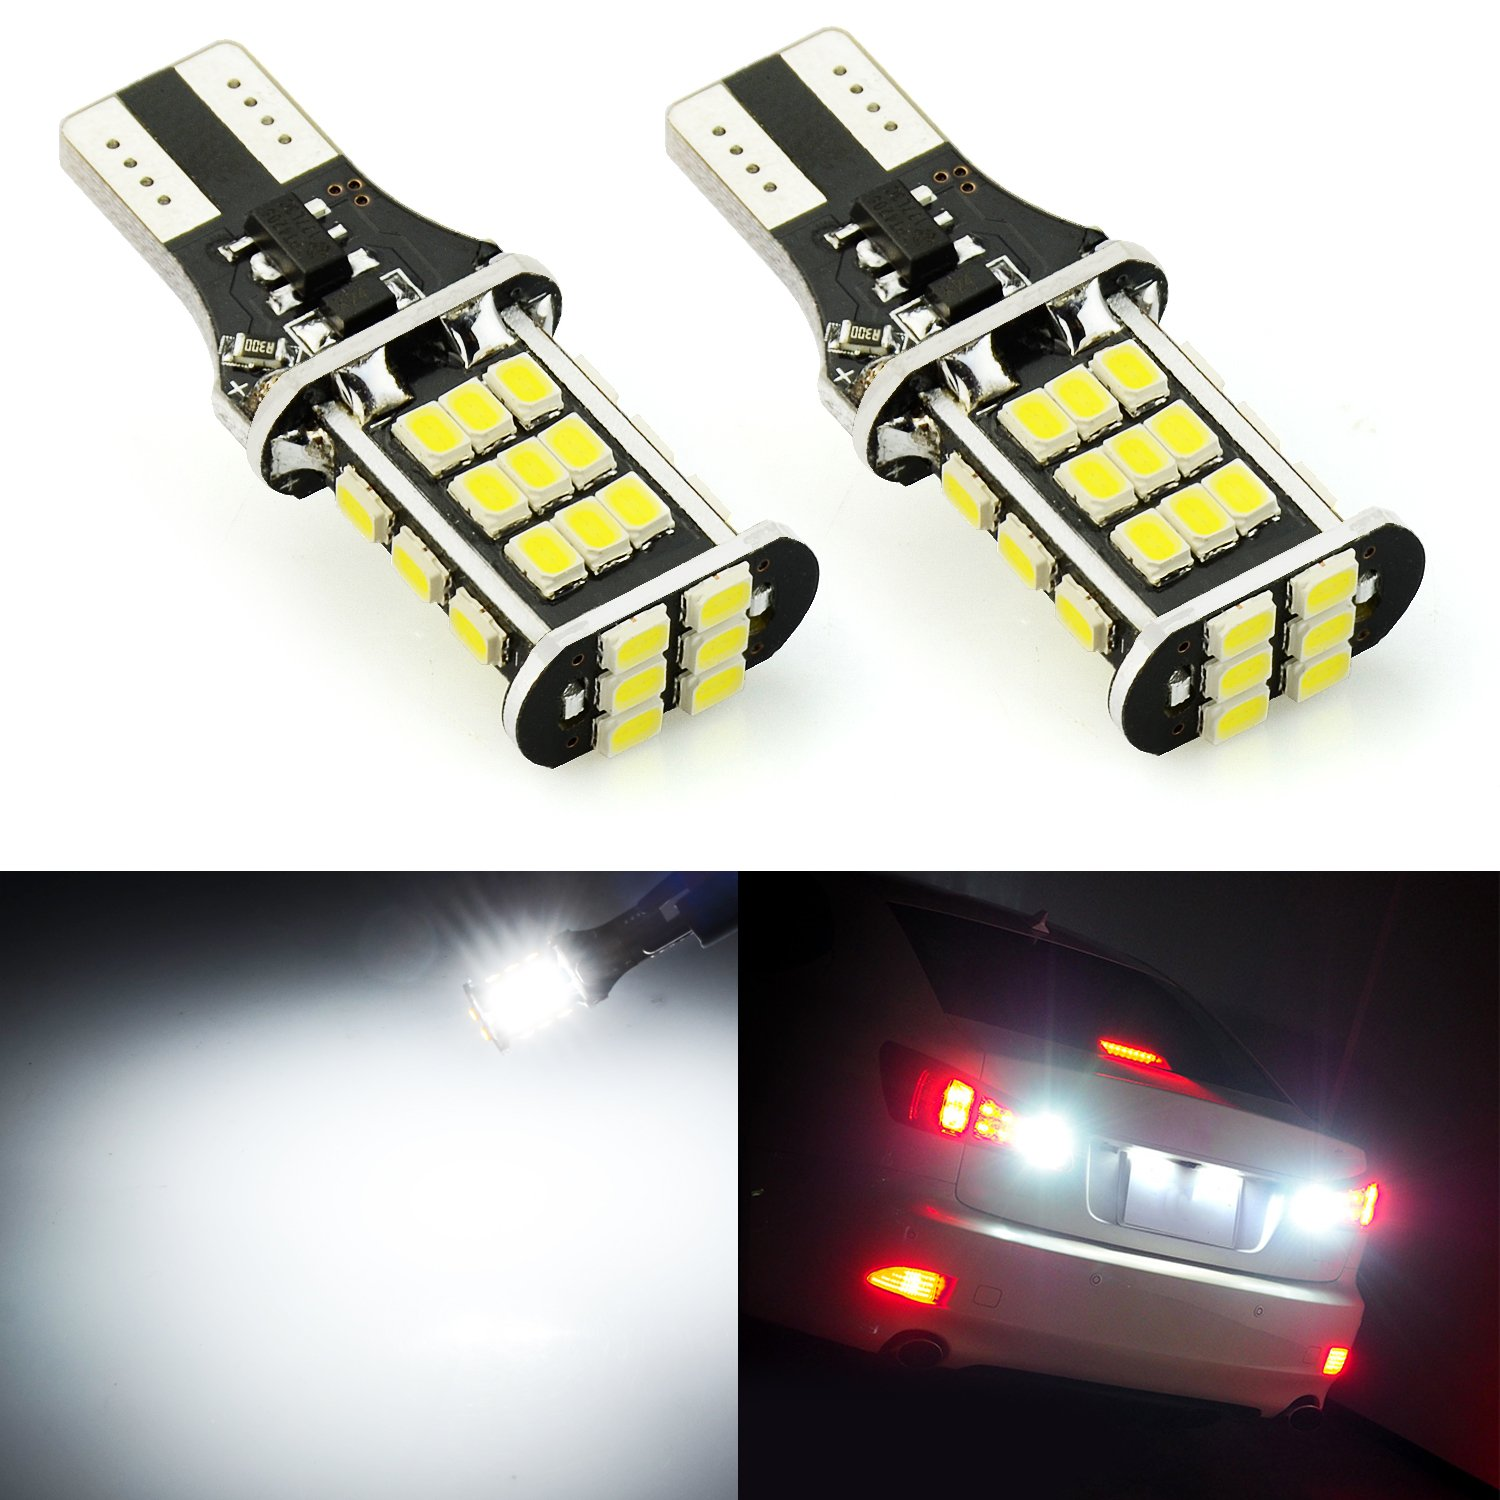 JDM ASTAR 2000 lumens Extremely Bright Error Free 921 912 3020 Chips LED Bulbs For Backup Reverse Lights, Xenon White